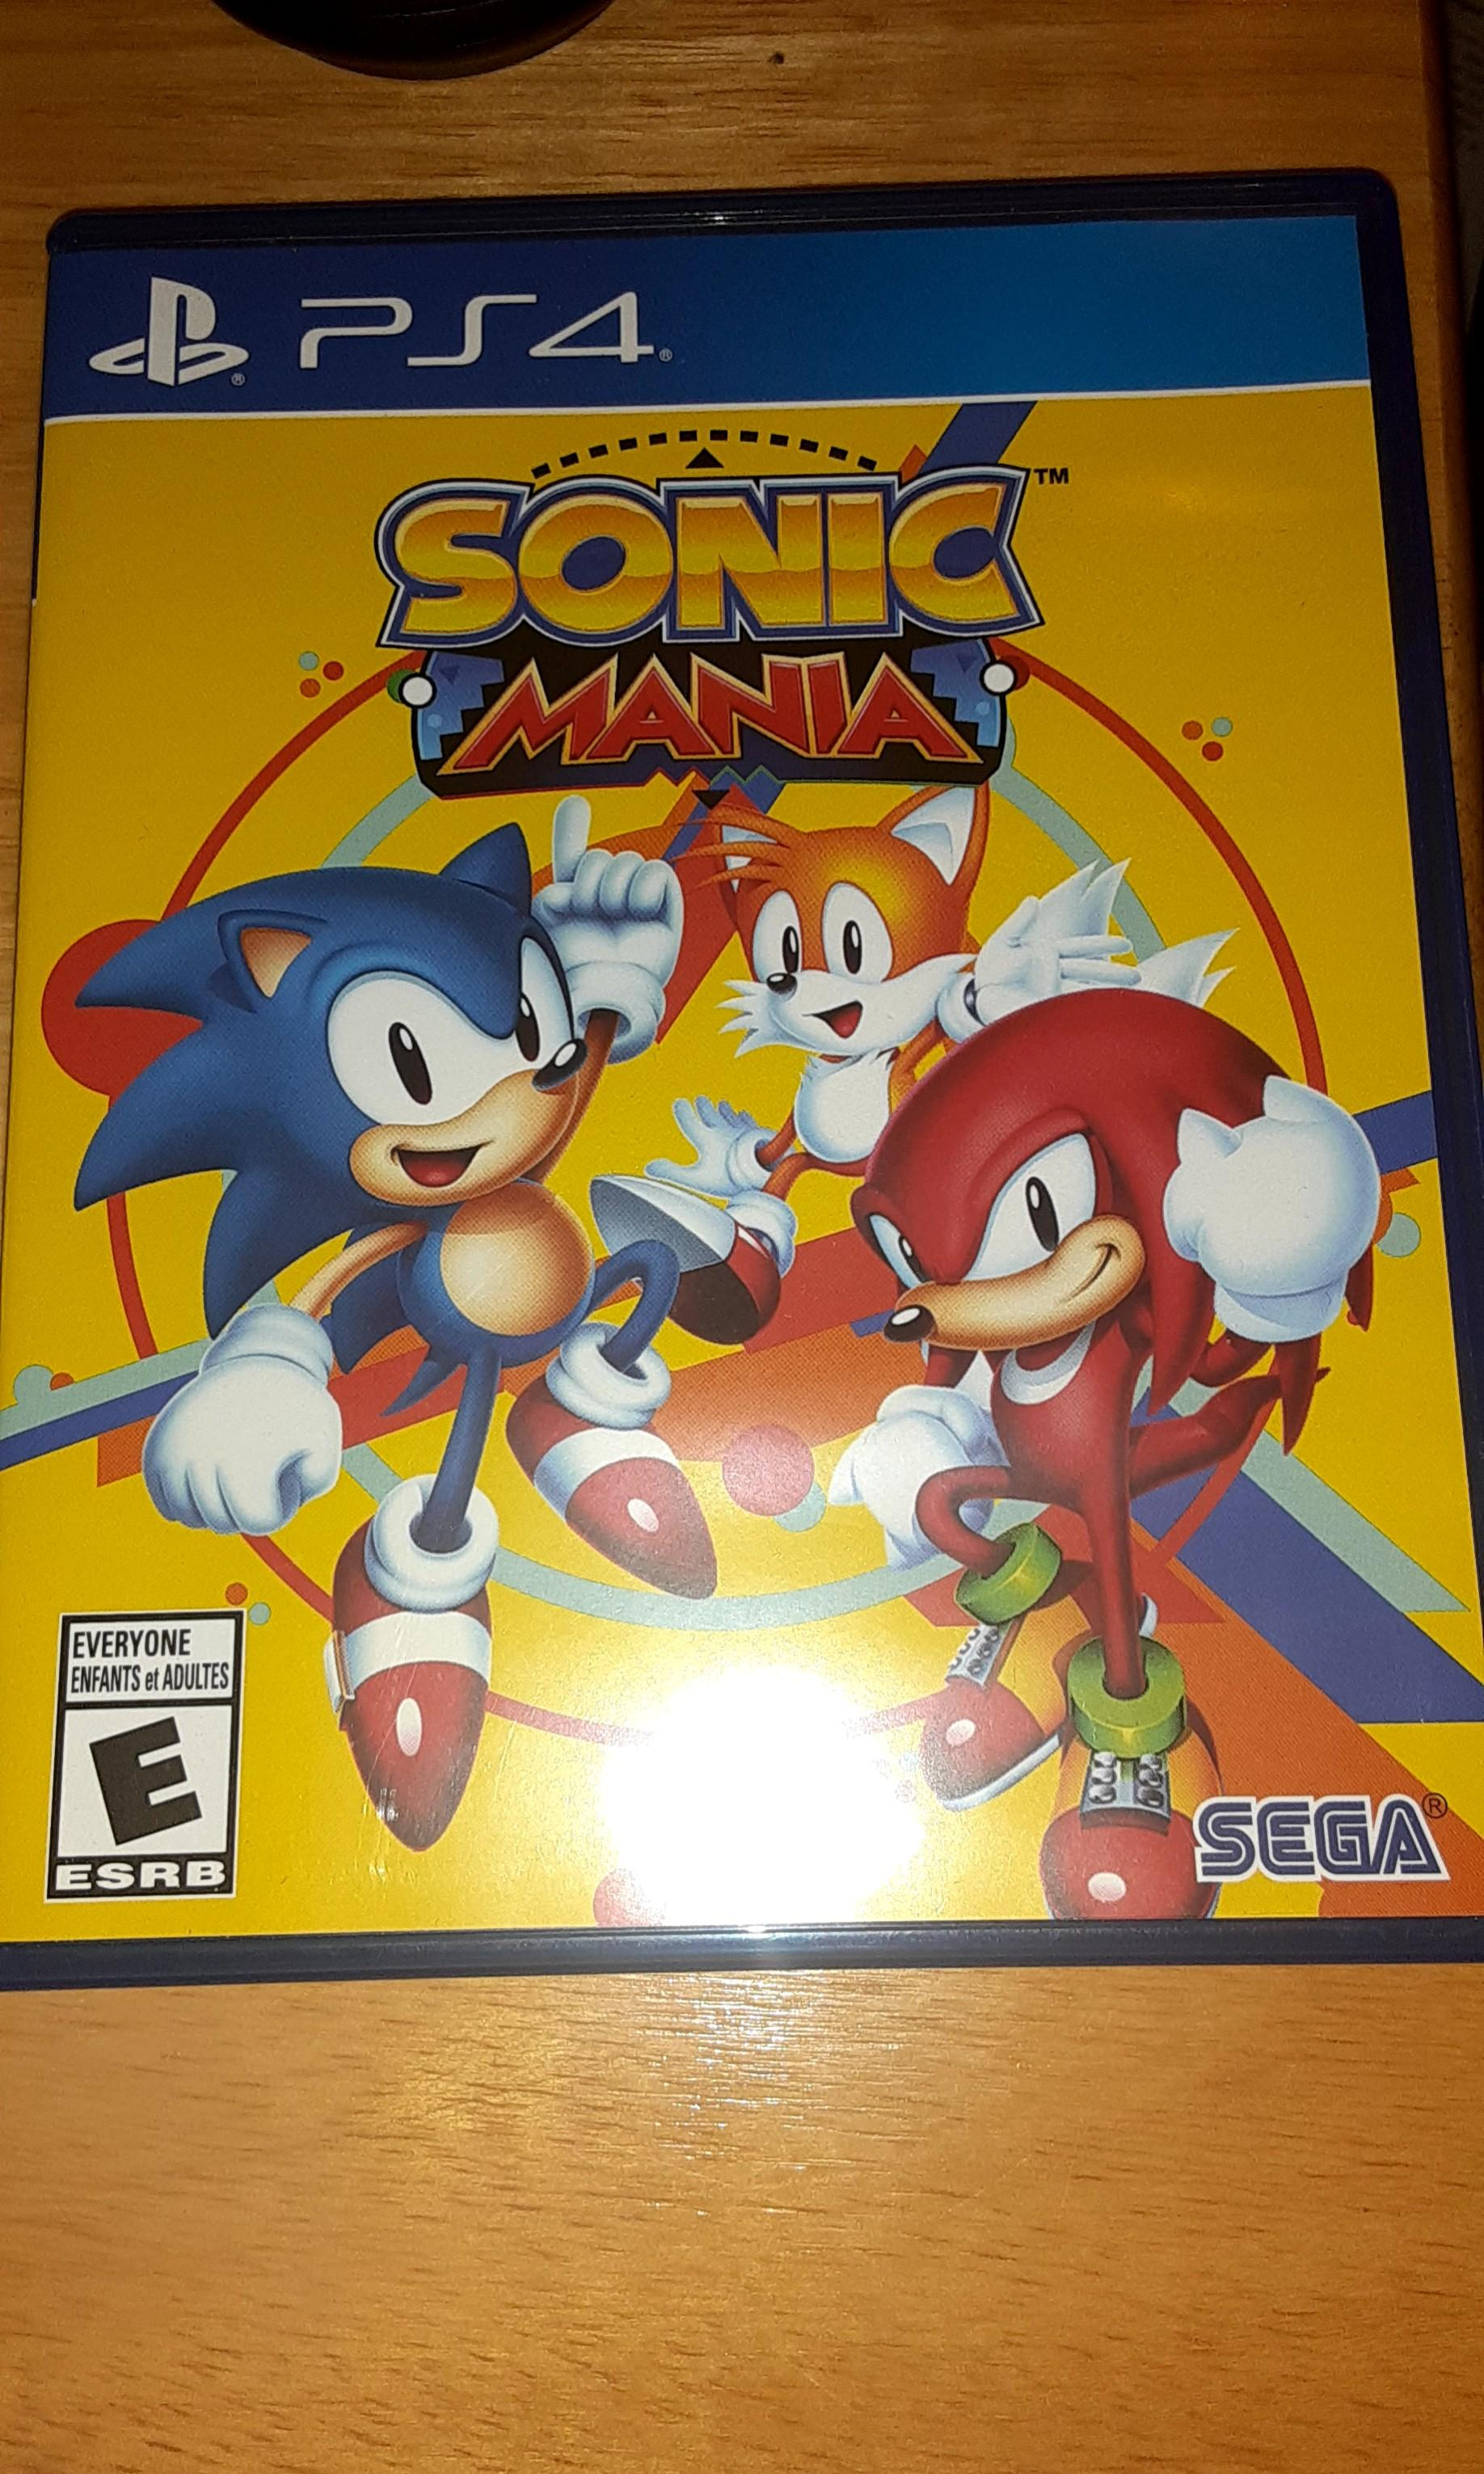 PS4 classic games SONIC MANIA and DRIVECLUB